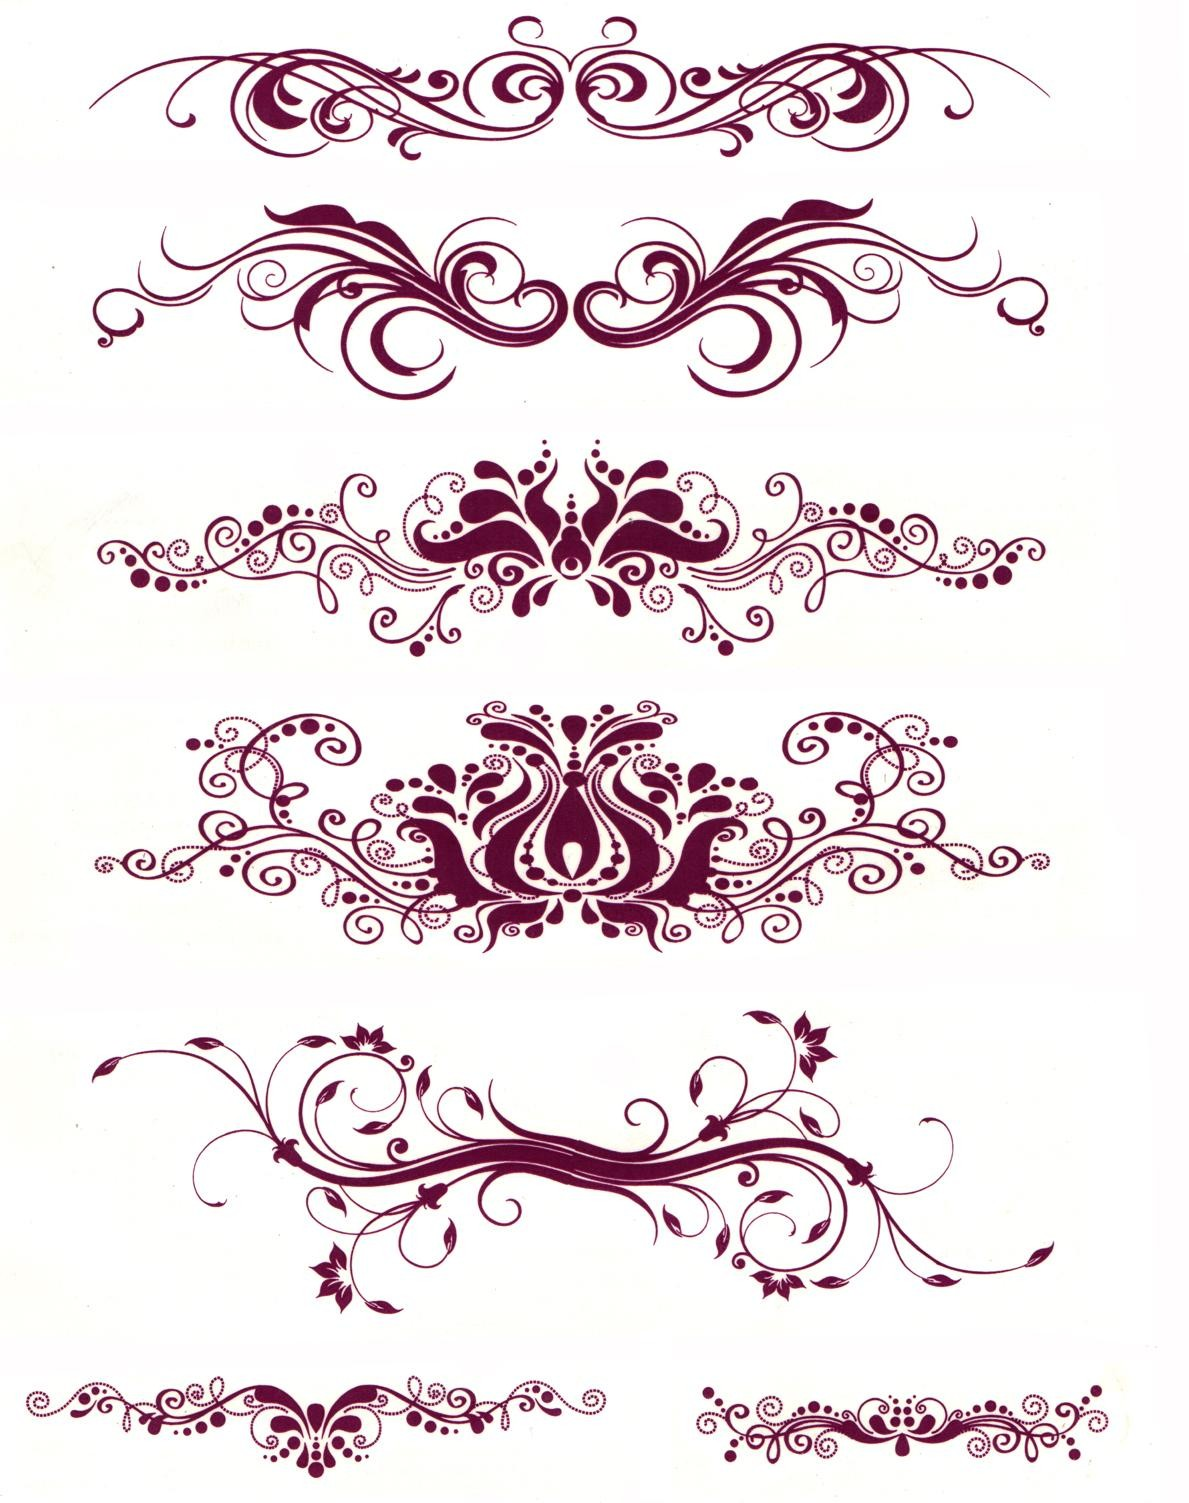 Water Transfer Temporary Tattoos (7 in 1) - 1